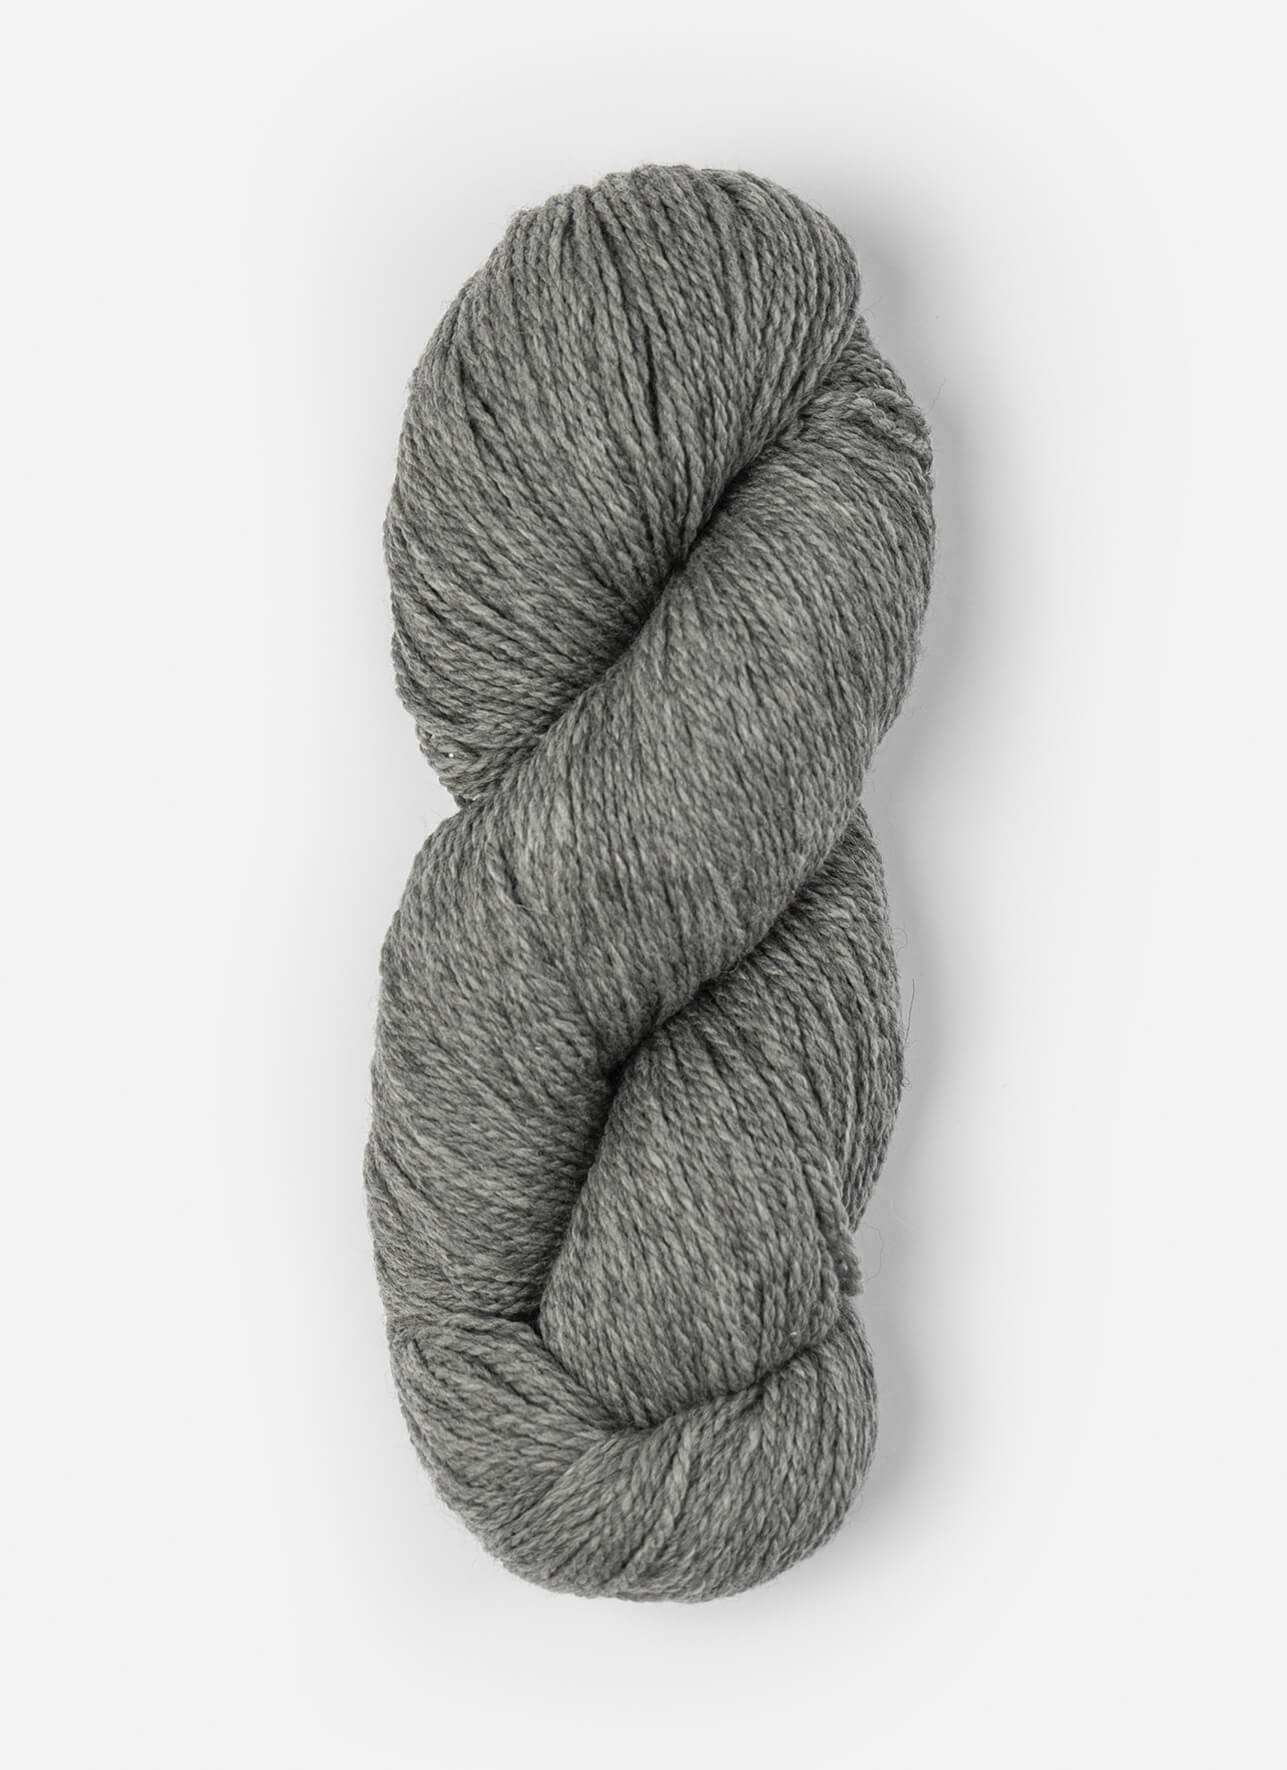 Blue Sky Fibers' Woolstok in 1301L - Storm Cloud